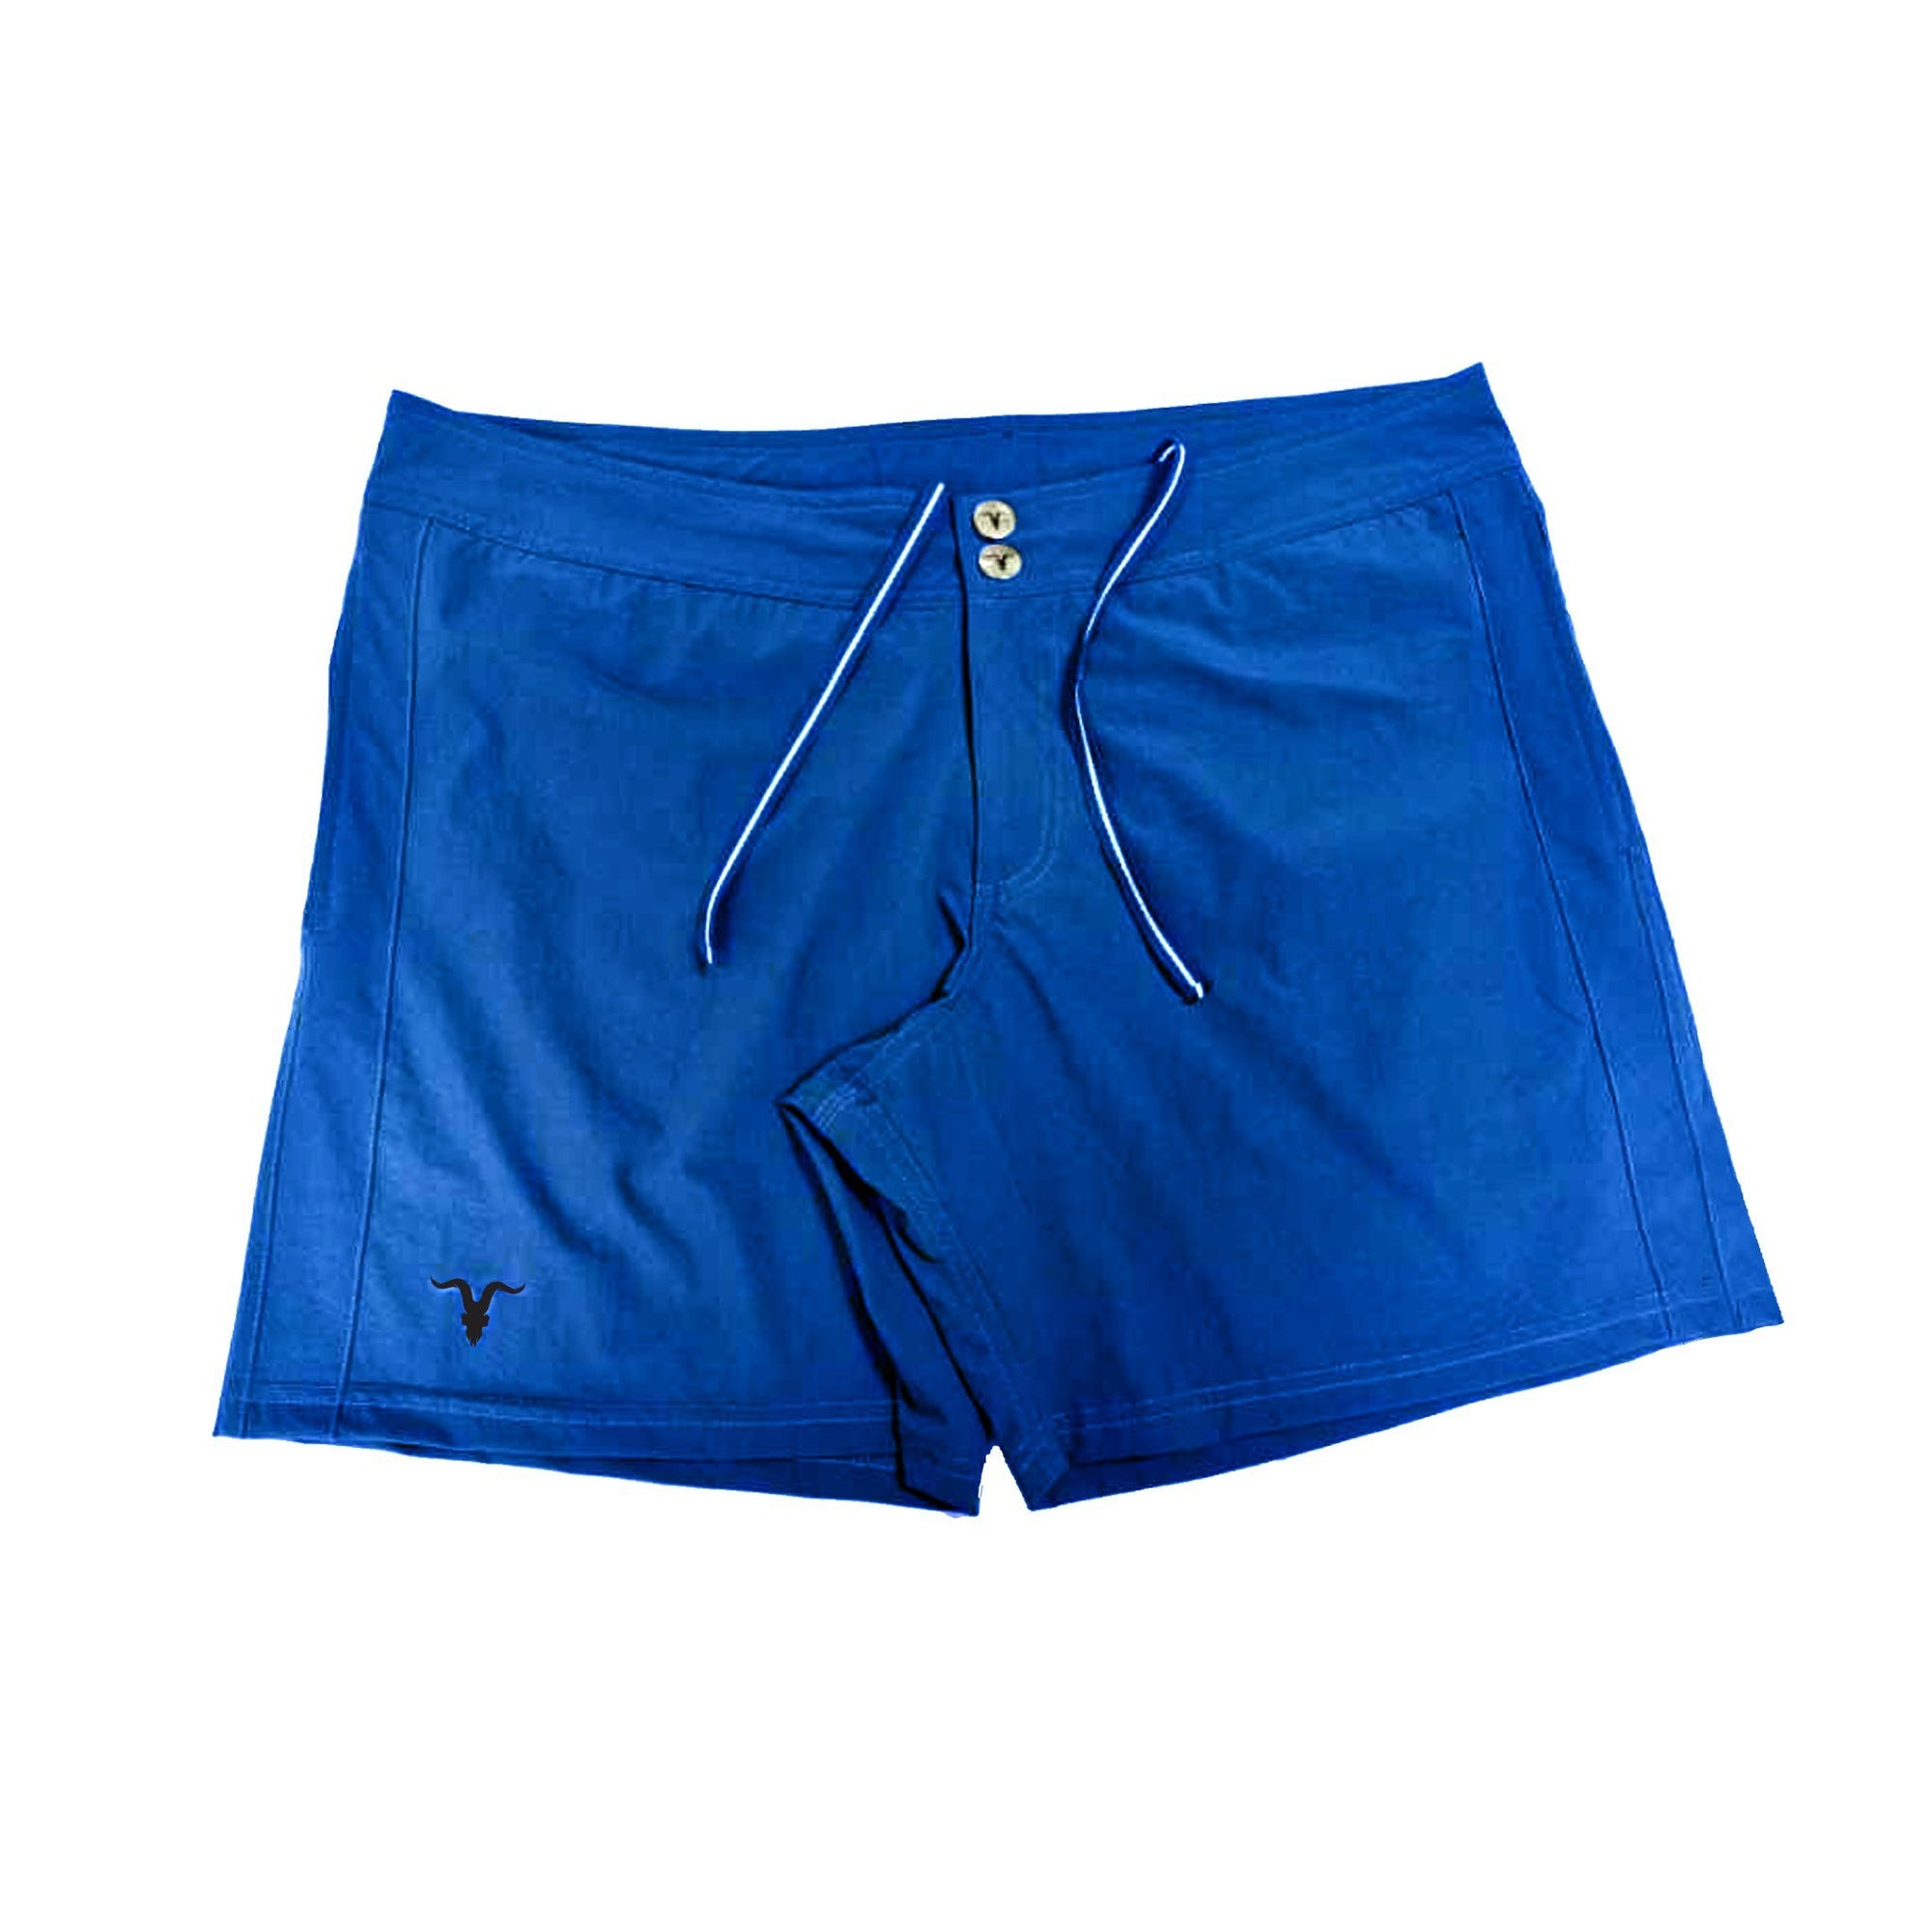 Men's Swim Shorts - Blue